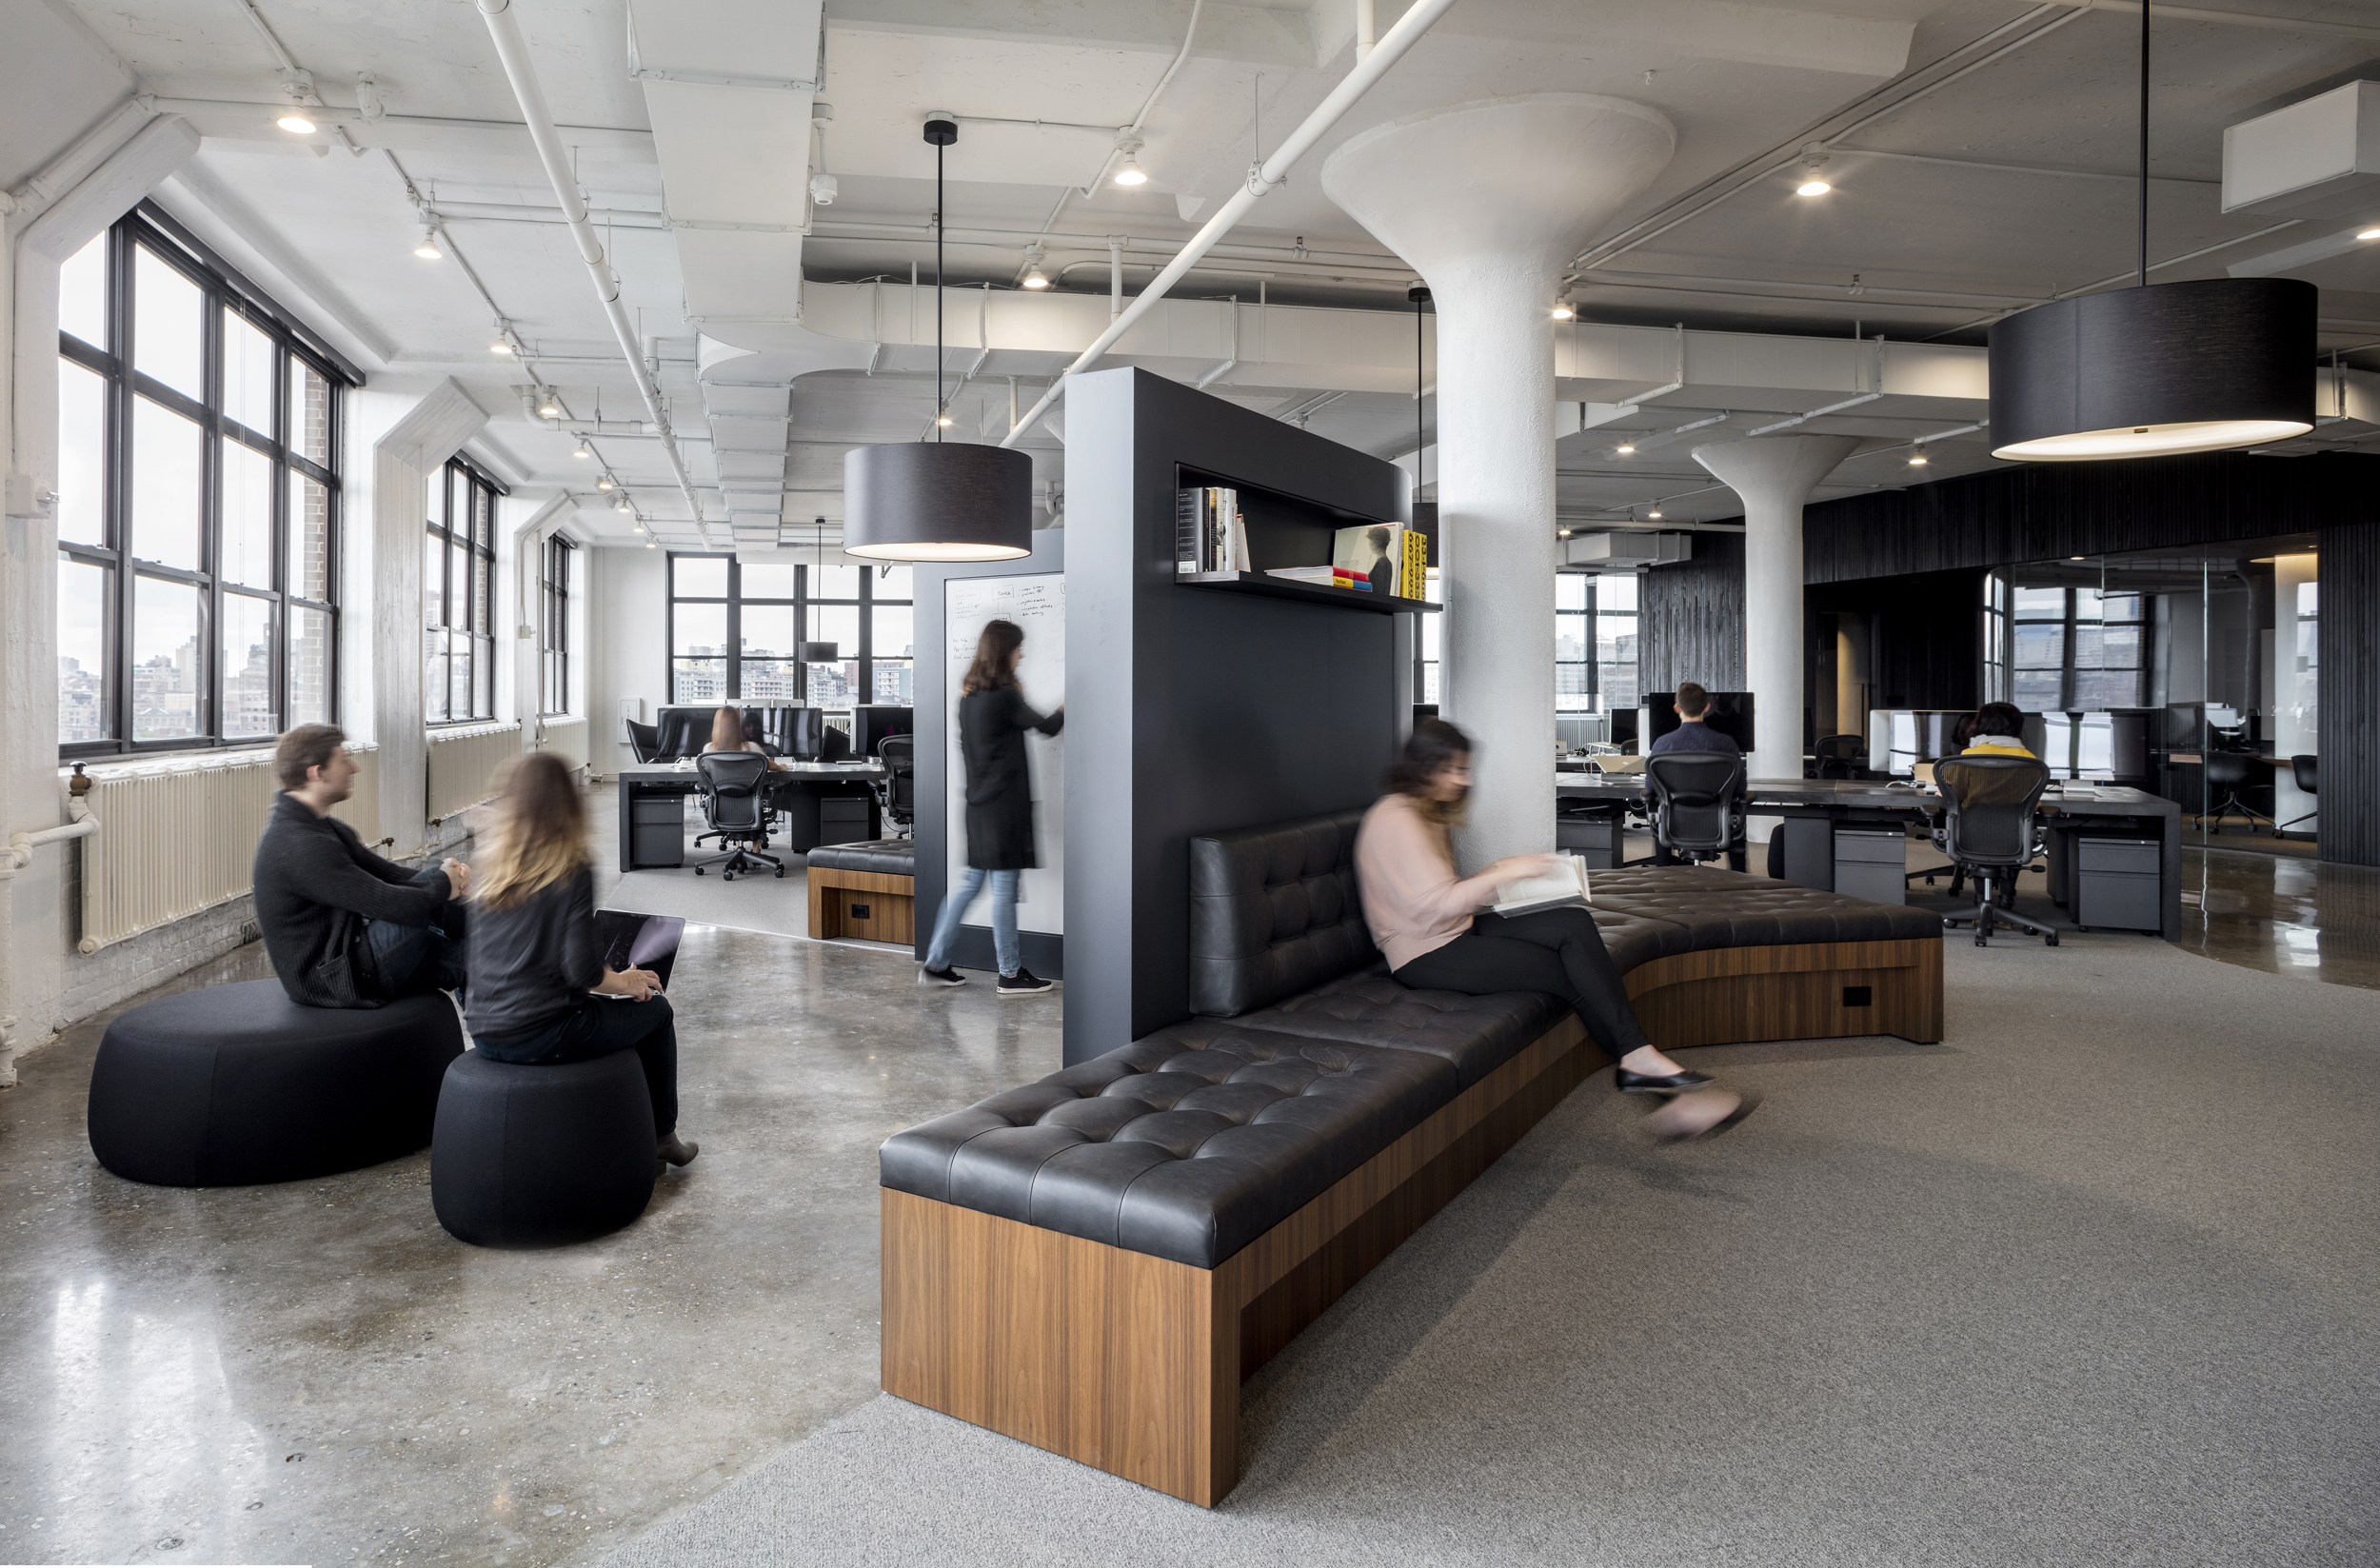 Squarespace, New York, NY   Architecture + Information